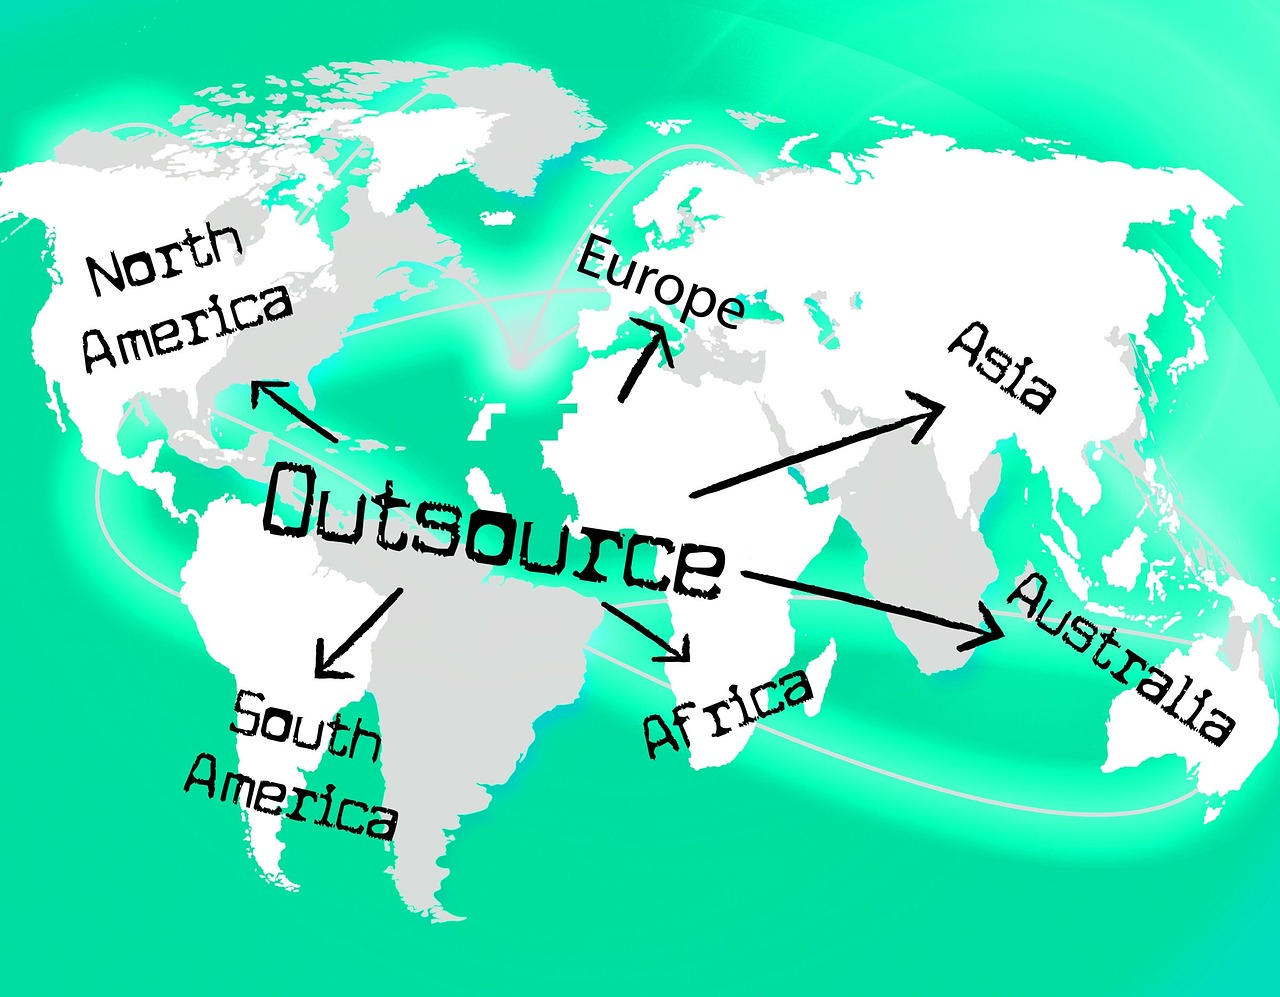 IB Business Management: Outsourcing, offshoring & re-shoring as HR strategies